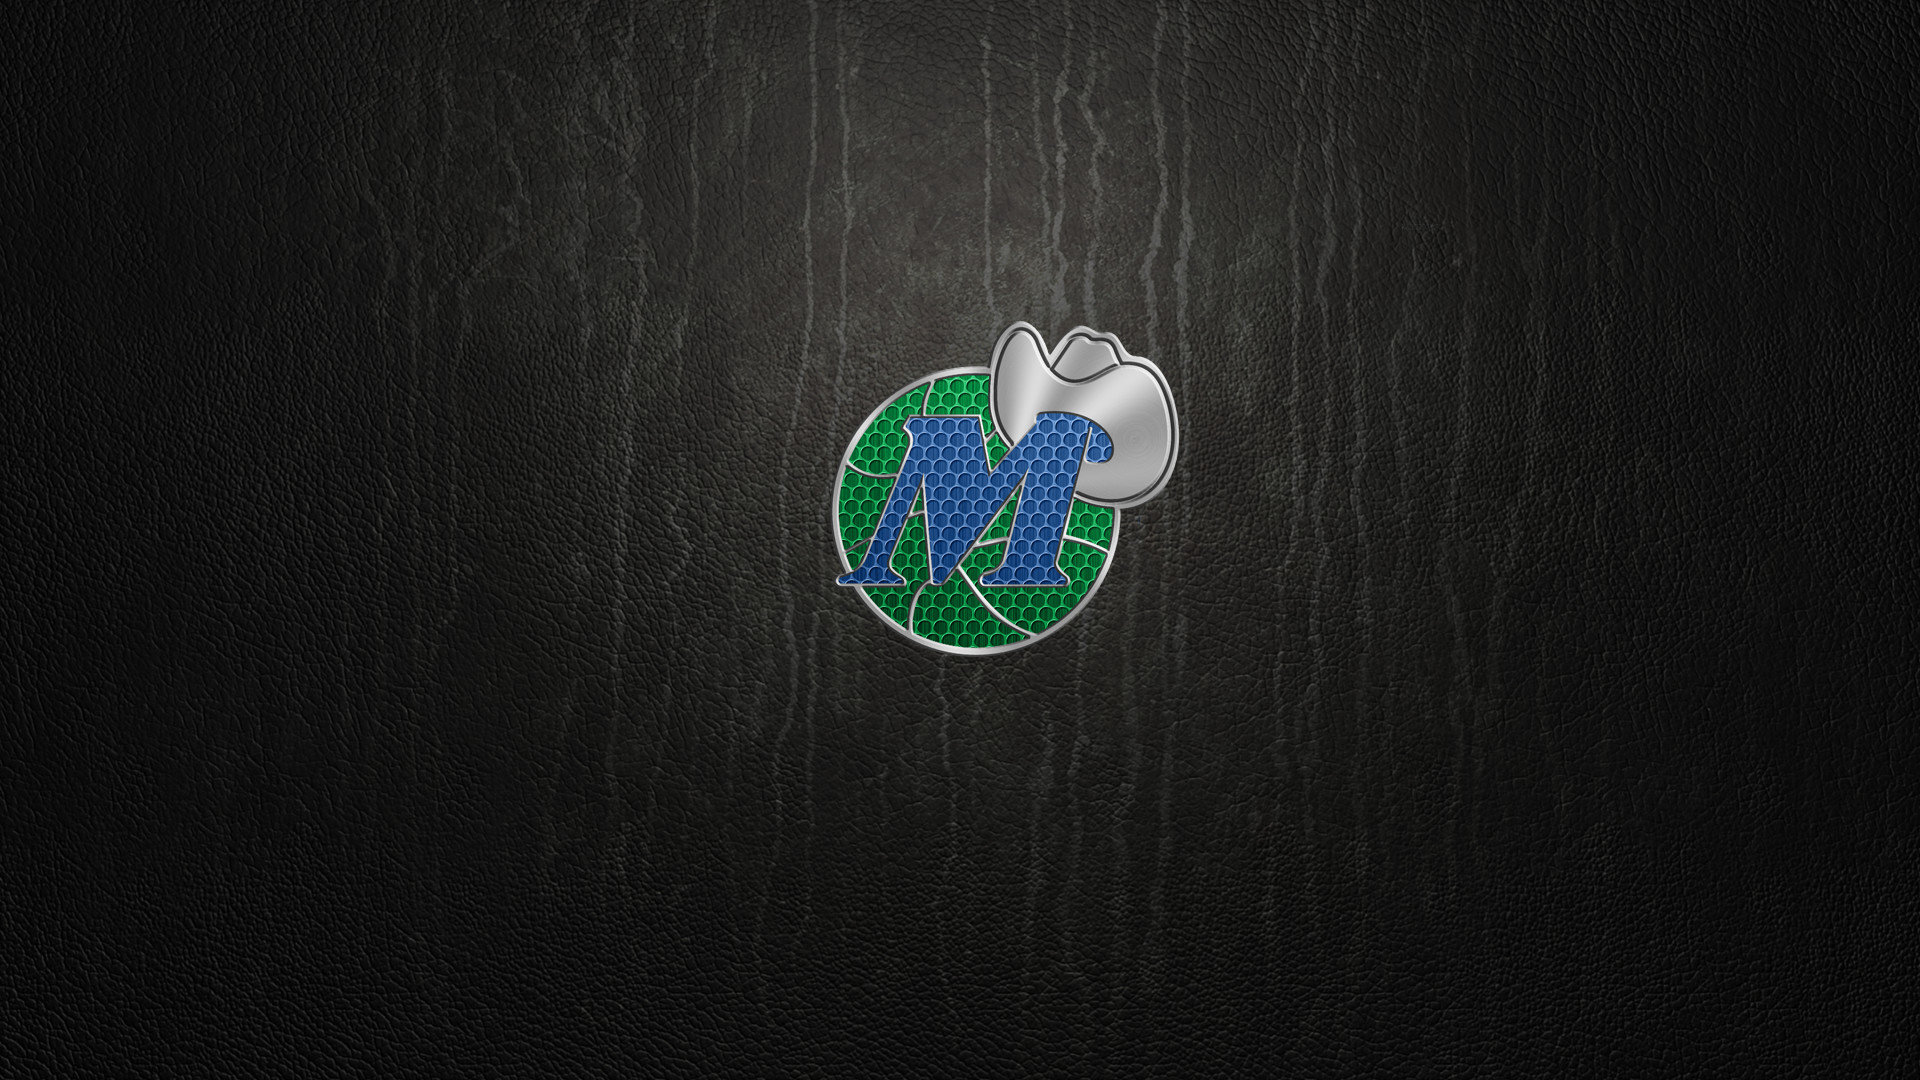 Awesome Dallas Mavericks Free Wallpaper ID48010 For Hd 1920x1080 Computer